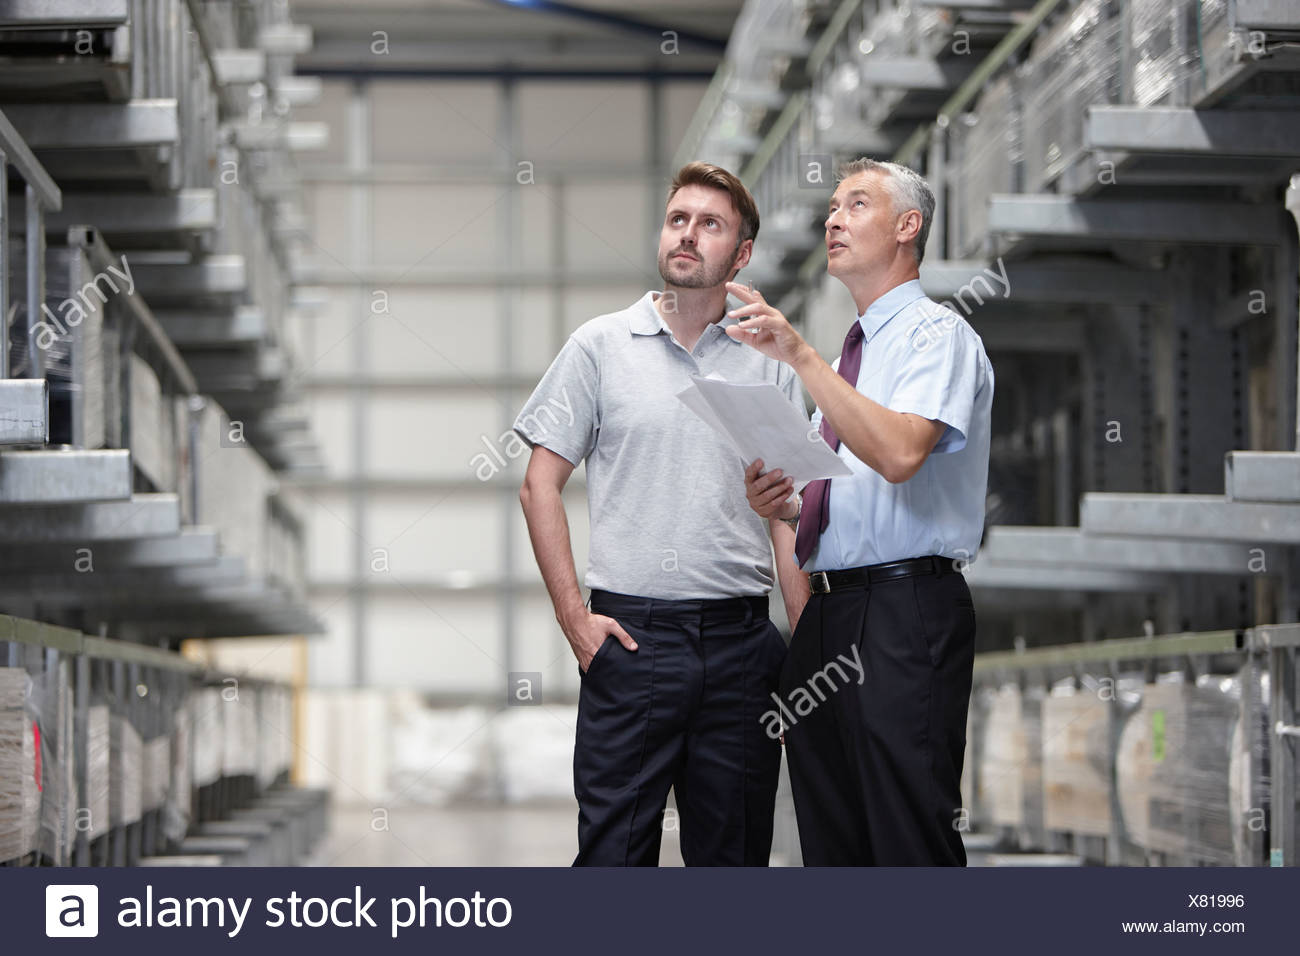 Worker and manager checking products in engineering warehouse - Stock Image